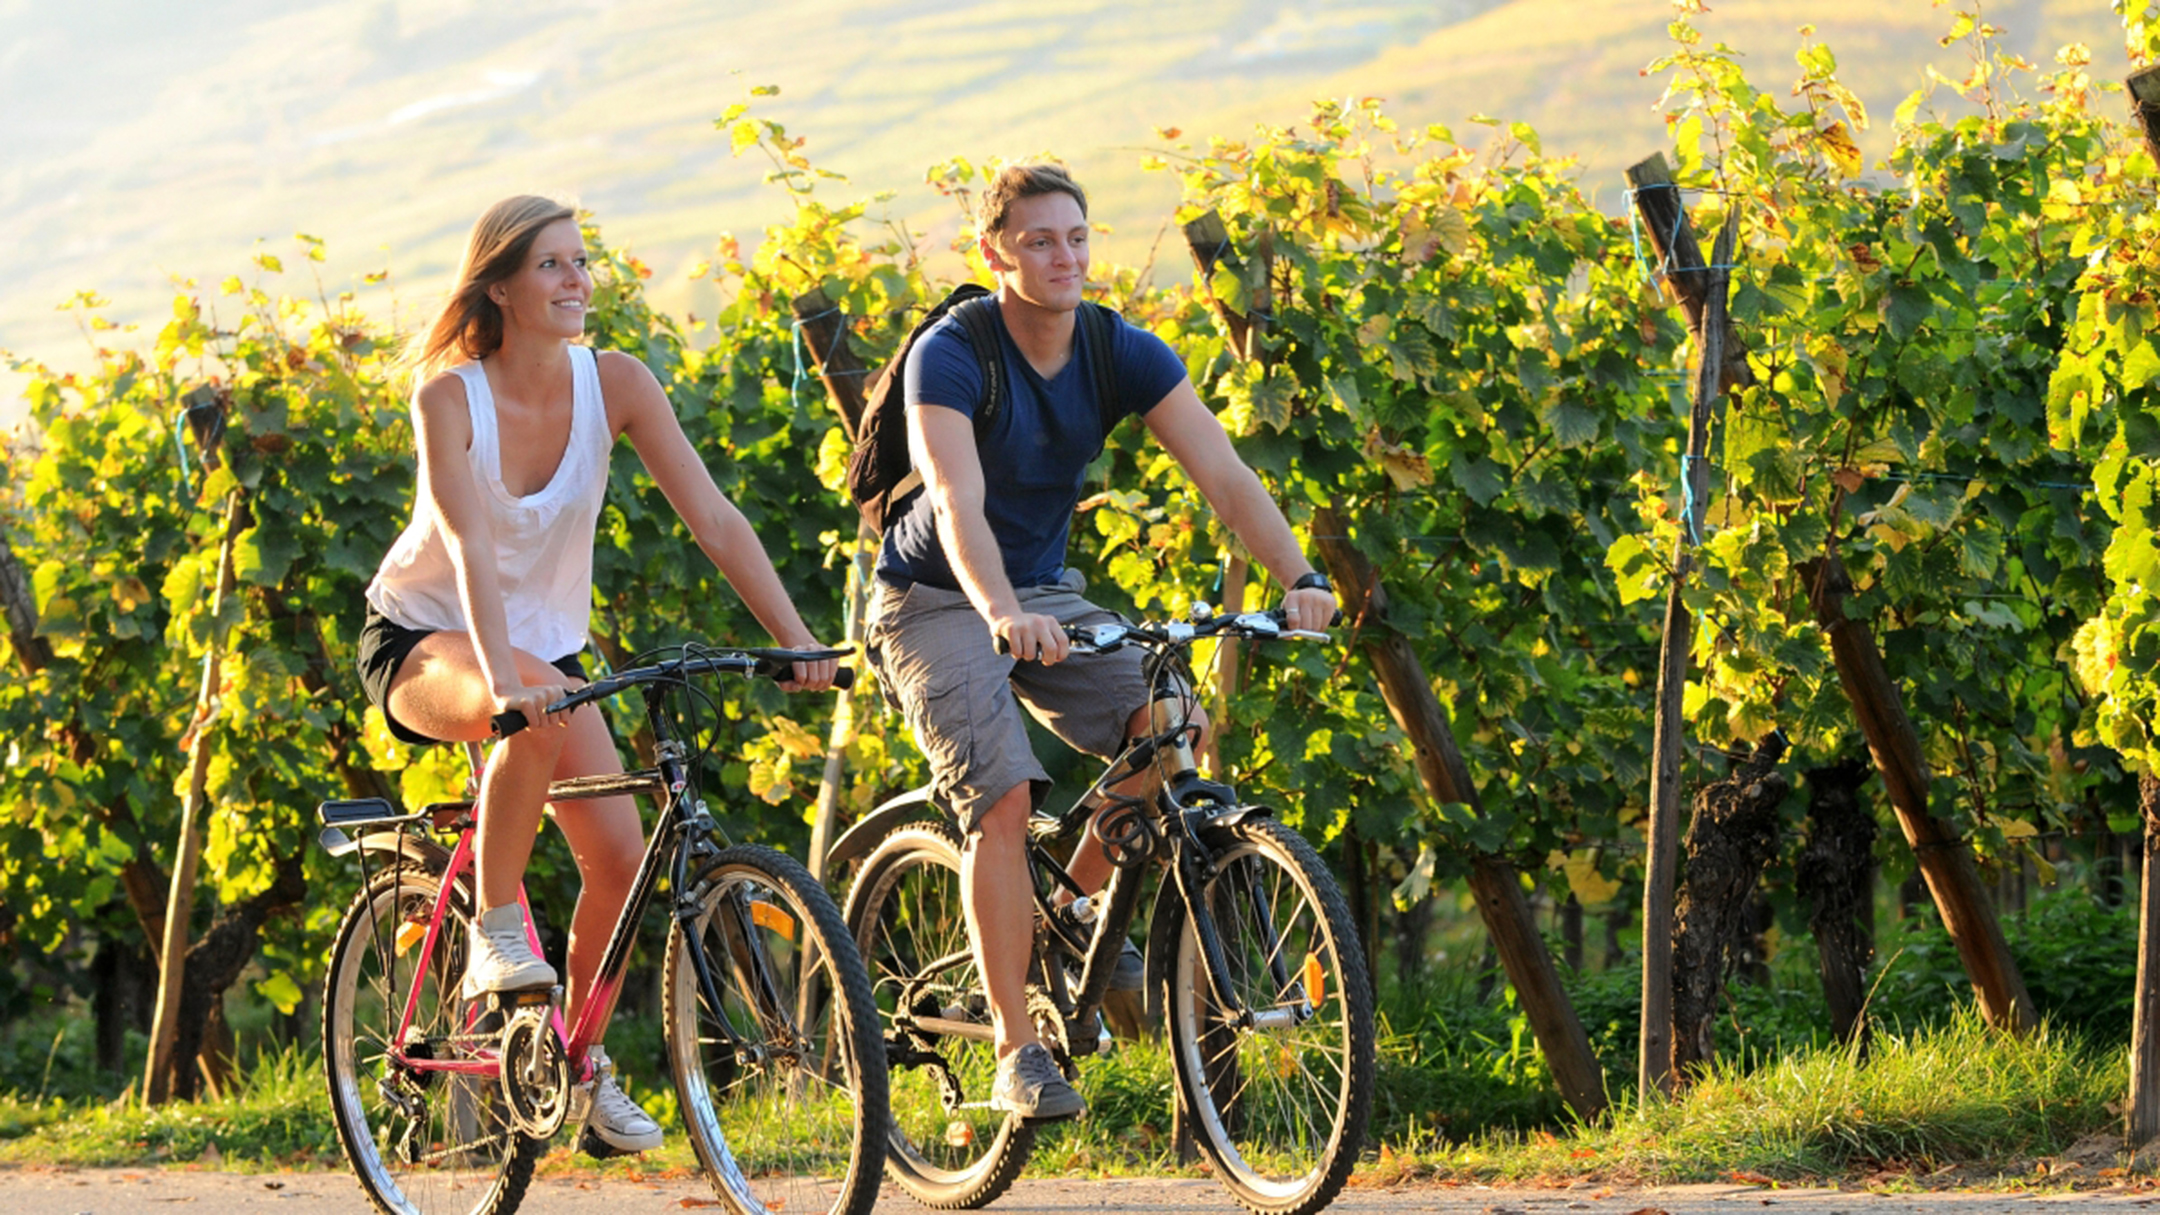 Bike routes combined with wine tourism